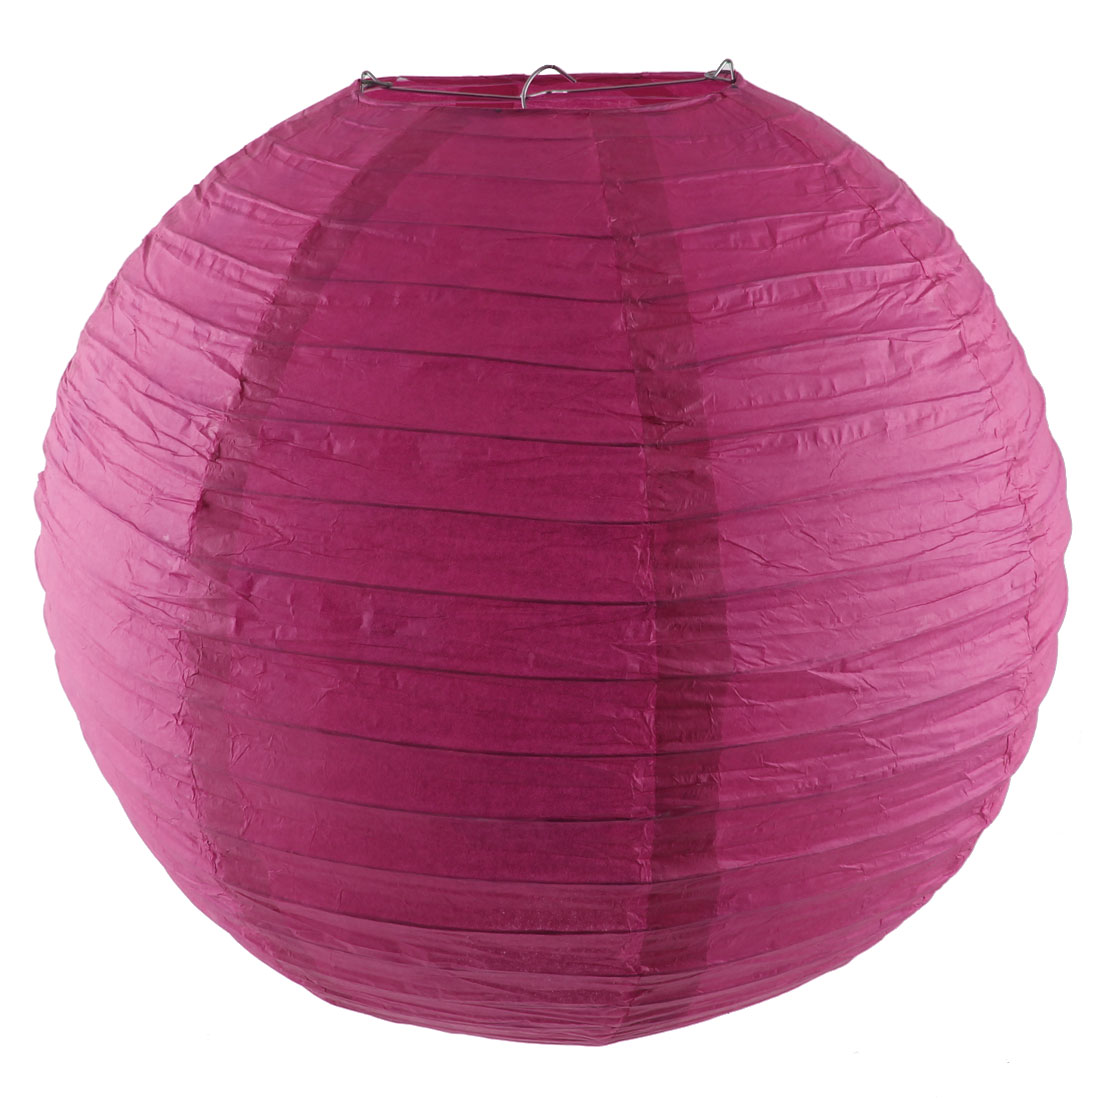 Household Party Paper Ball Shape DIY Hanging Decor Lantern Fuchsia 16 Inch Dia